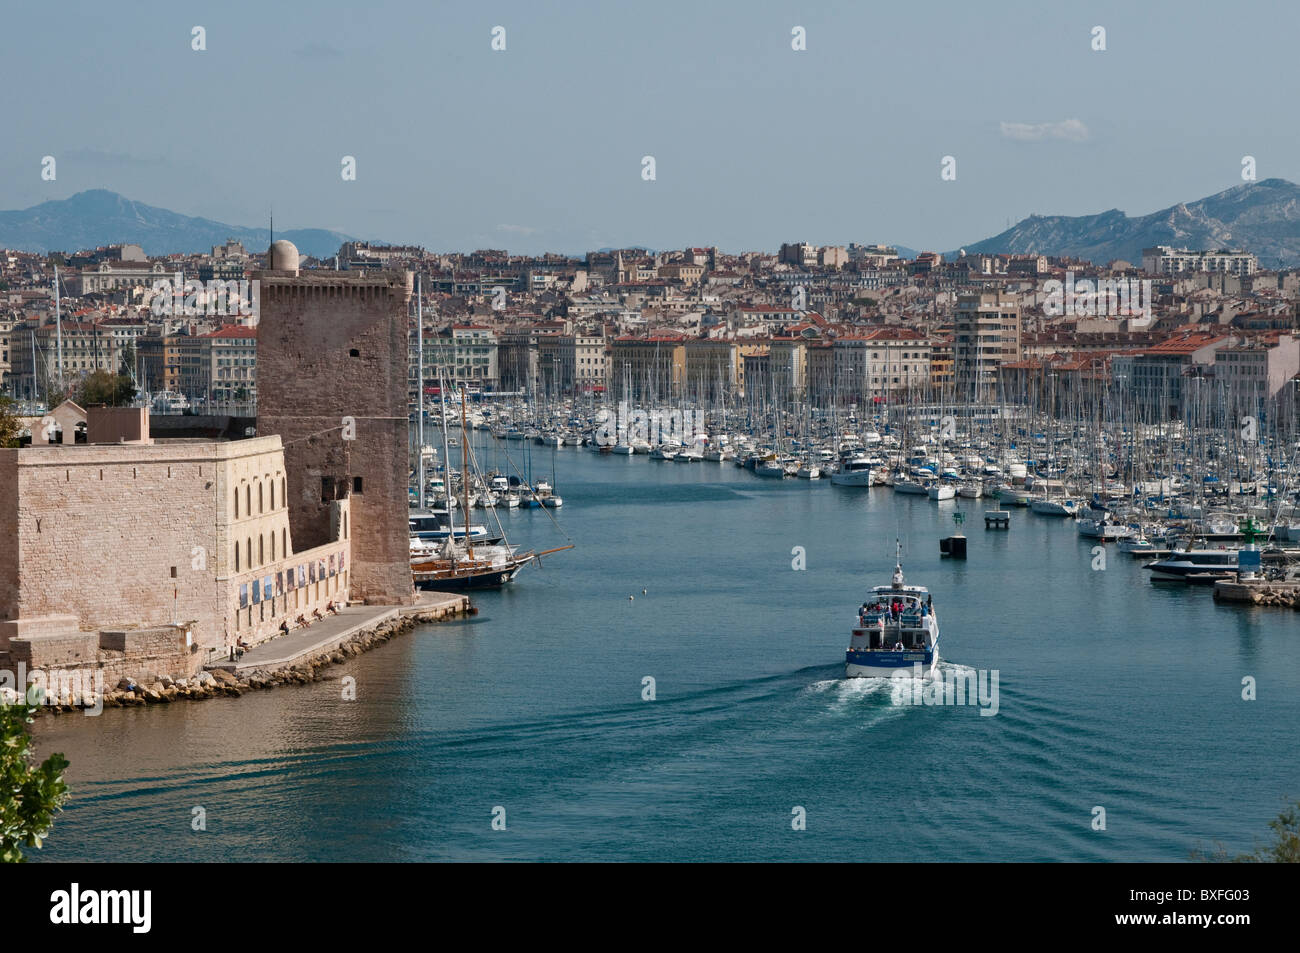 Vieux Port, Old Harbour, Marseille, France - Stock Image